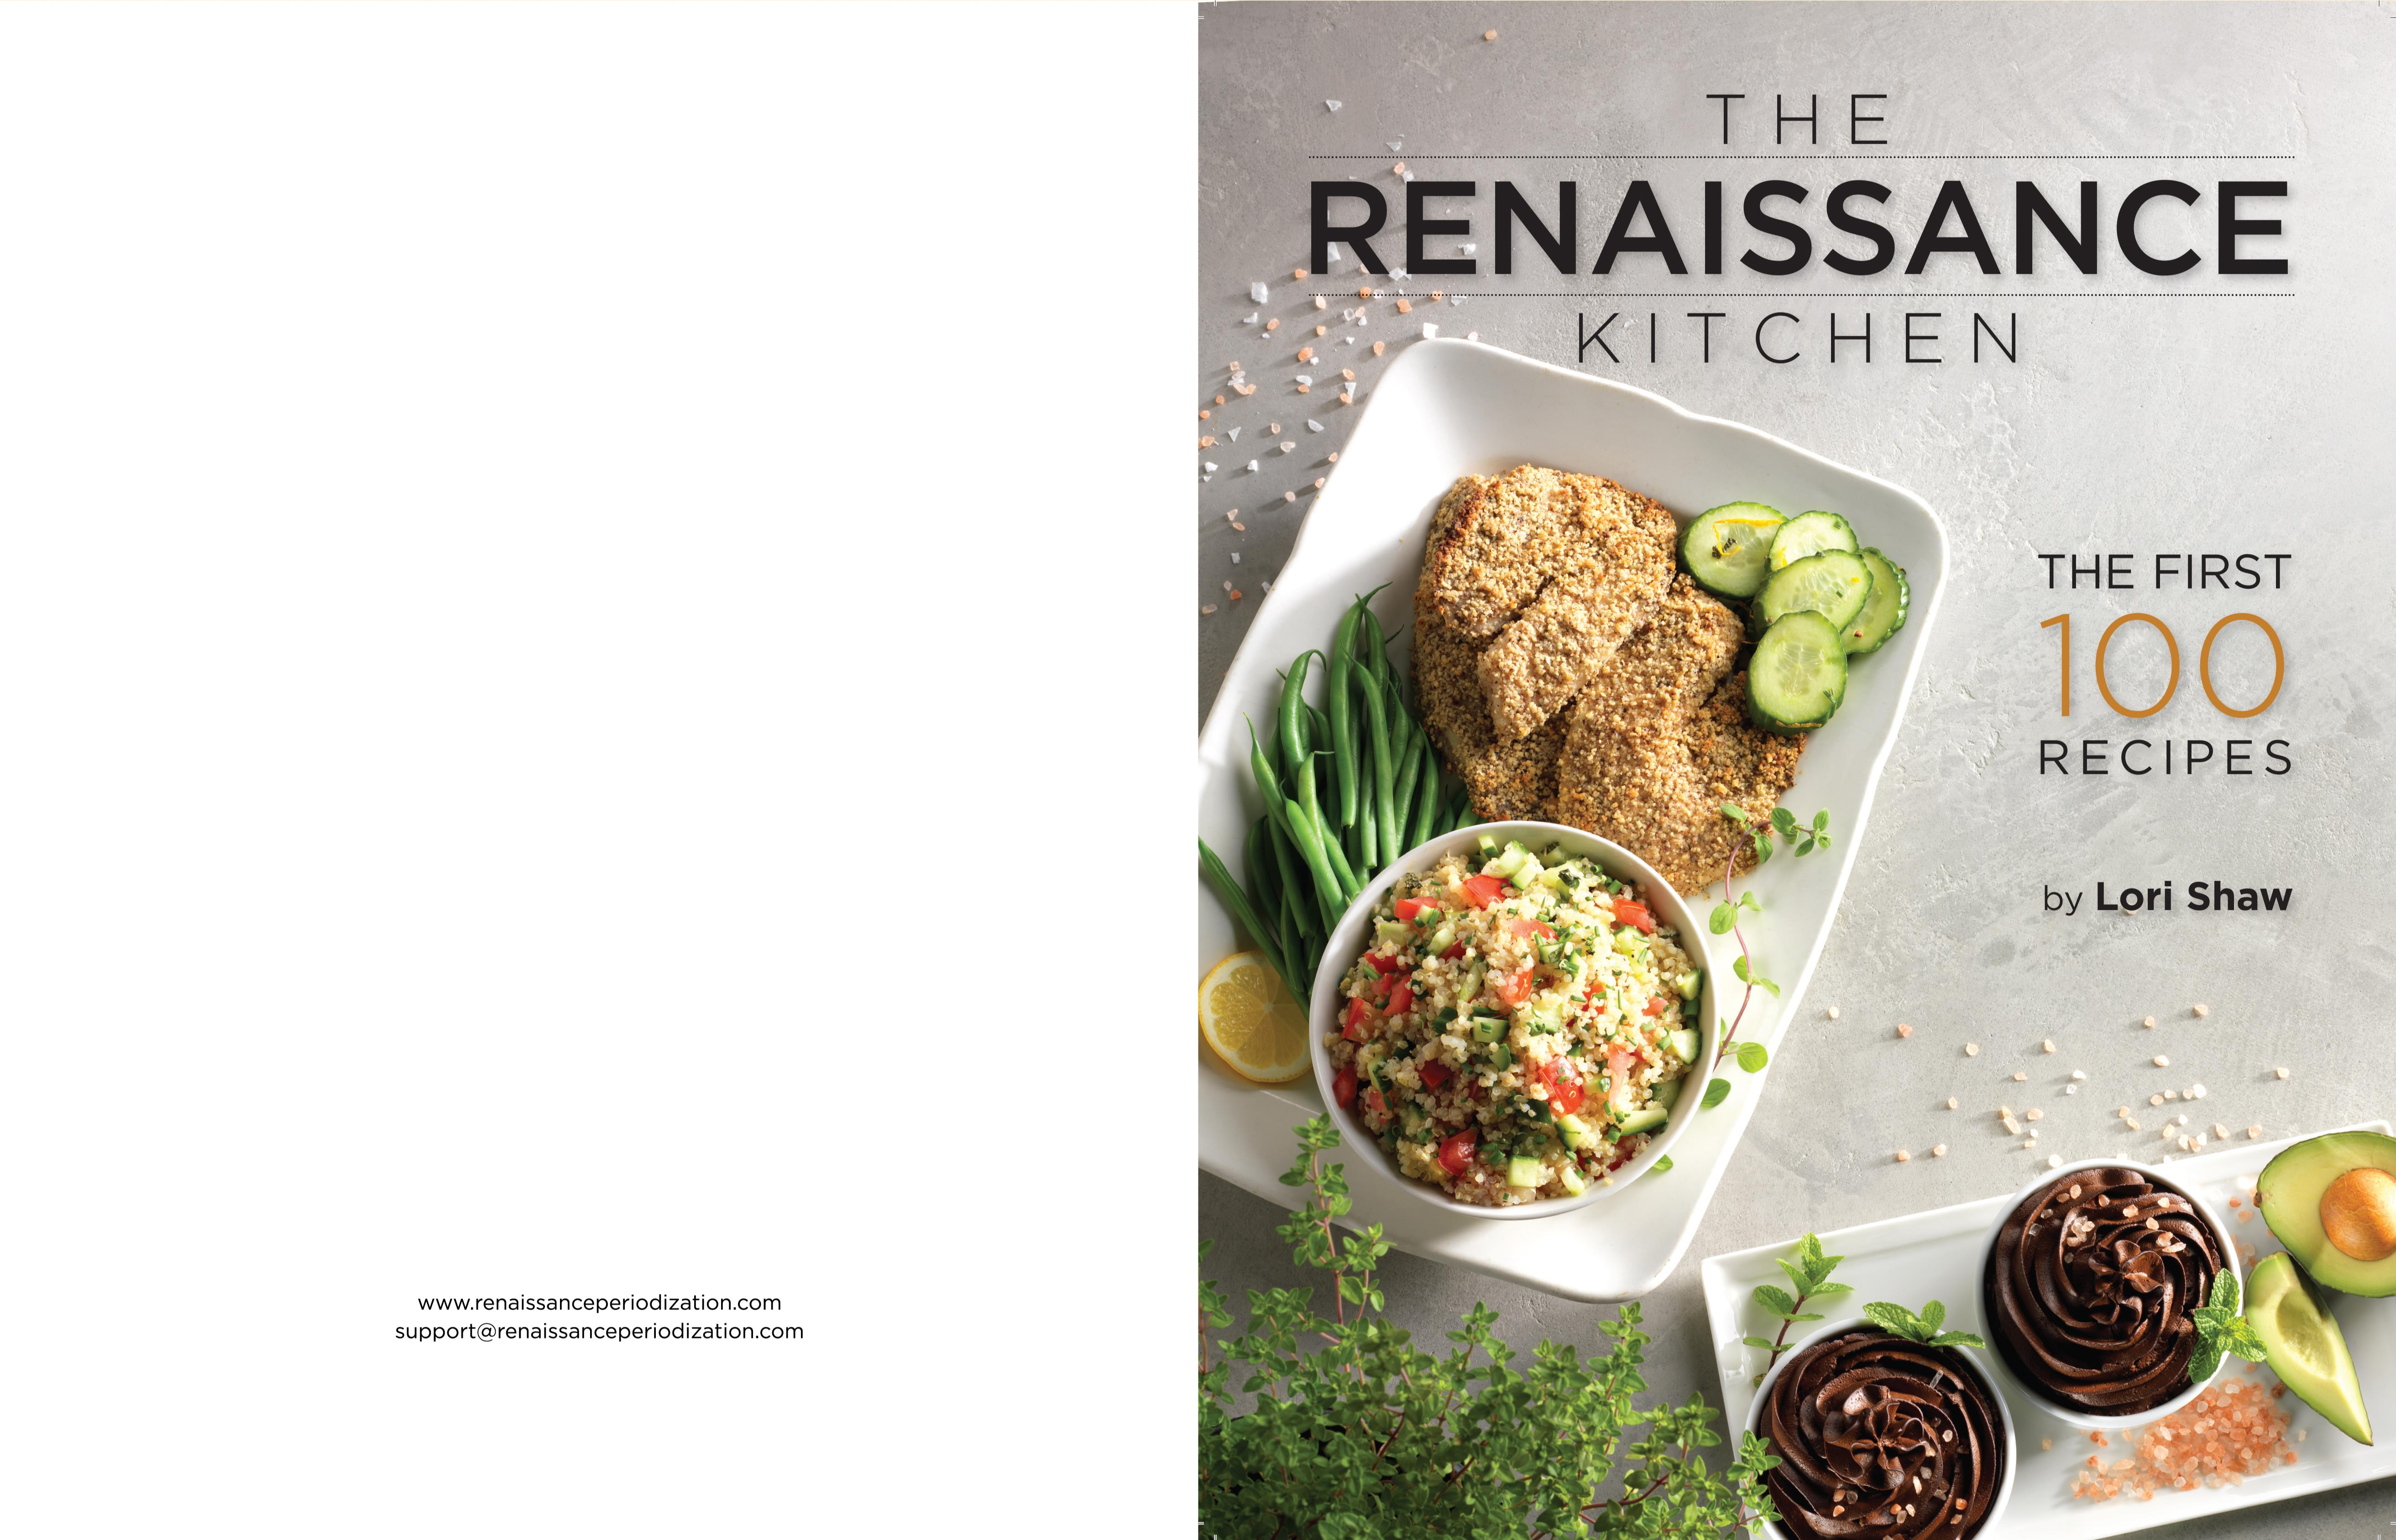 The Renaissance Kitchen cover image